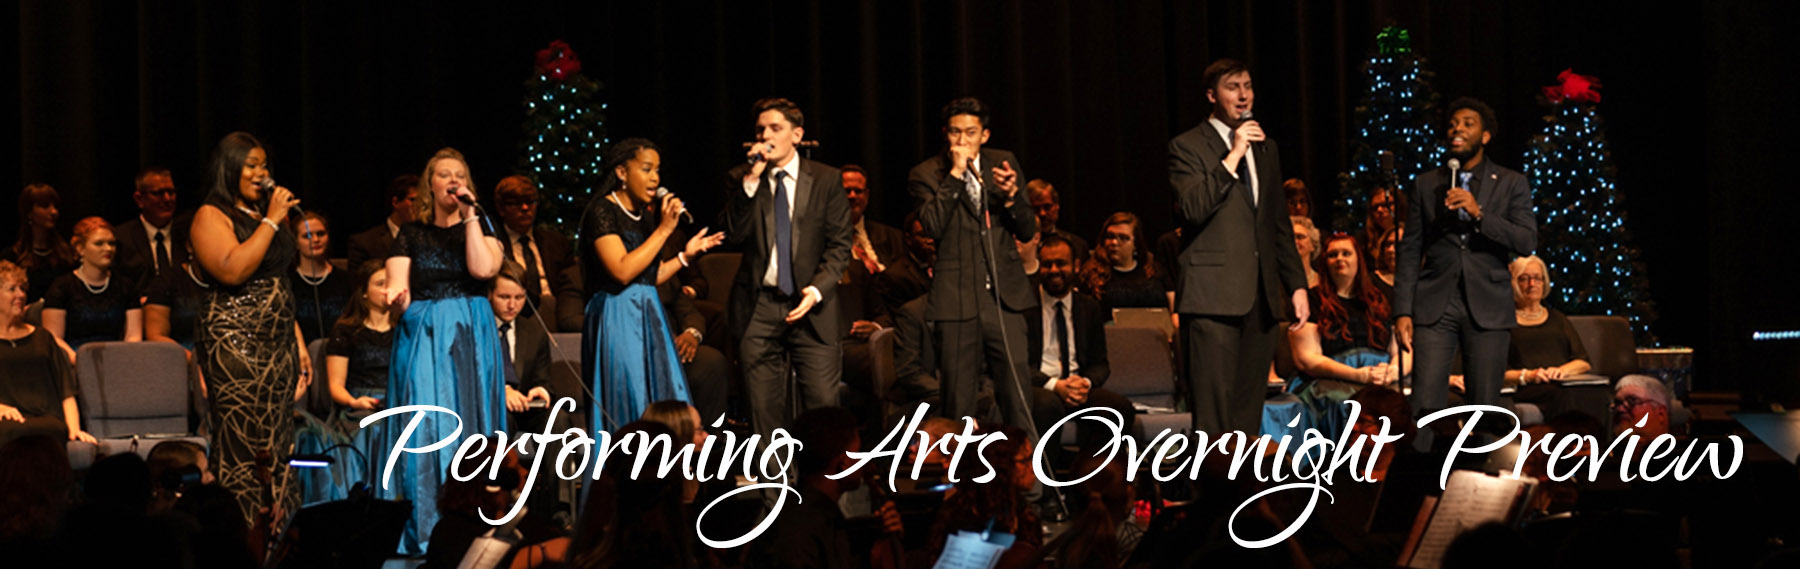 Performing Arts Preview Overnight